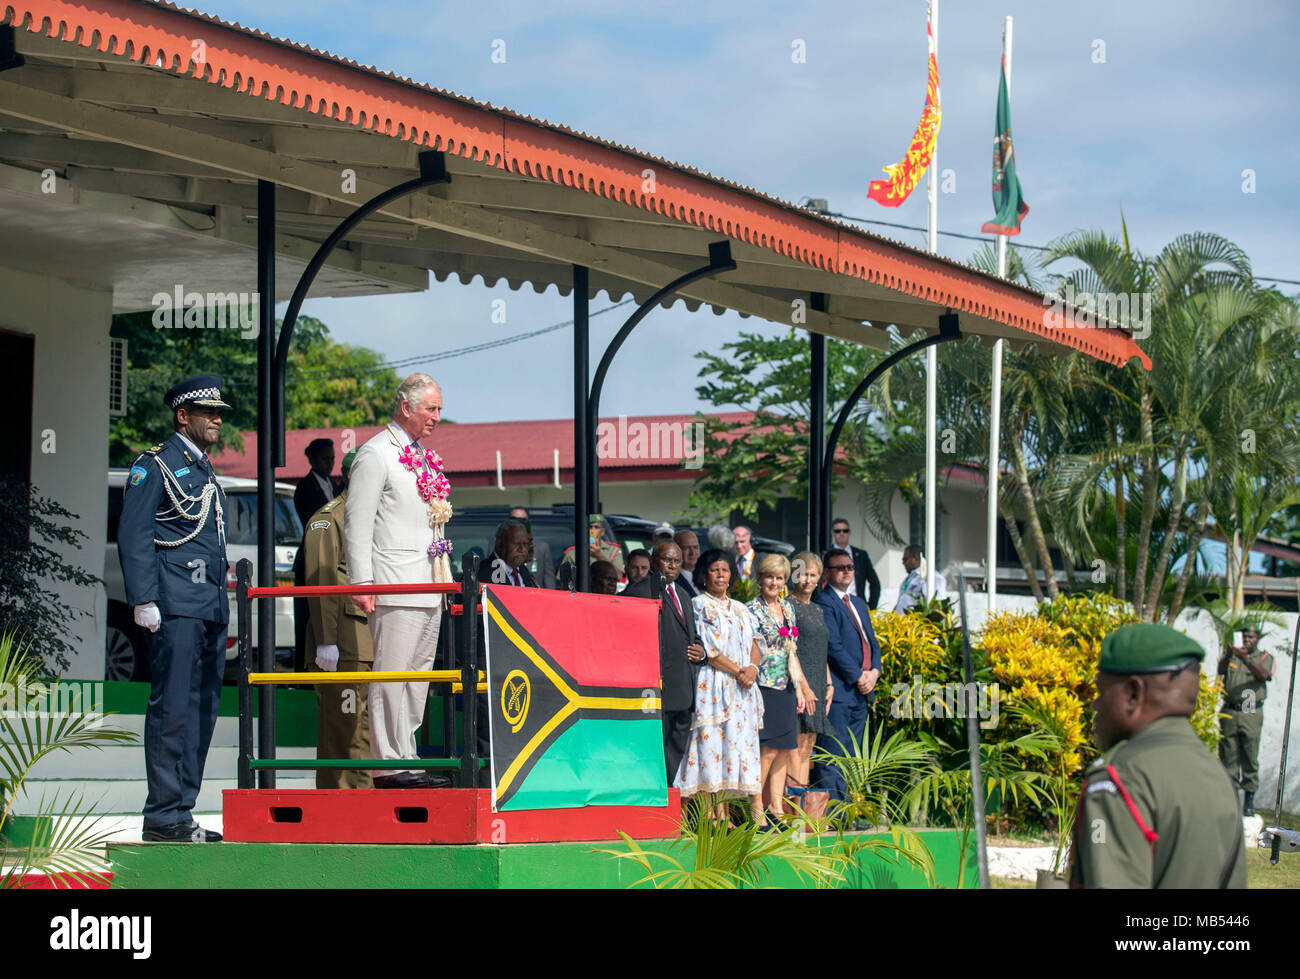 The Prince of Wales inspects a Guard of Honour, watched by His Excellency Obed Moses Tallis, President of Vanuatu and his wife Estelle Tallis (left of front row), as he visits the South Pacific island of Vanuatu, during his tour of the region. - Stock Image